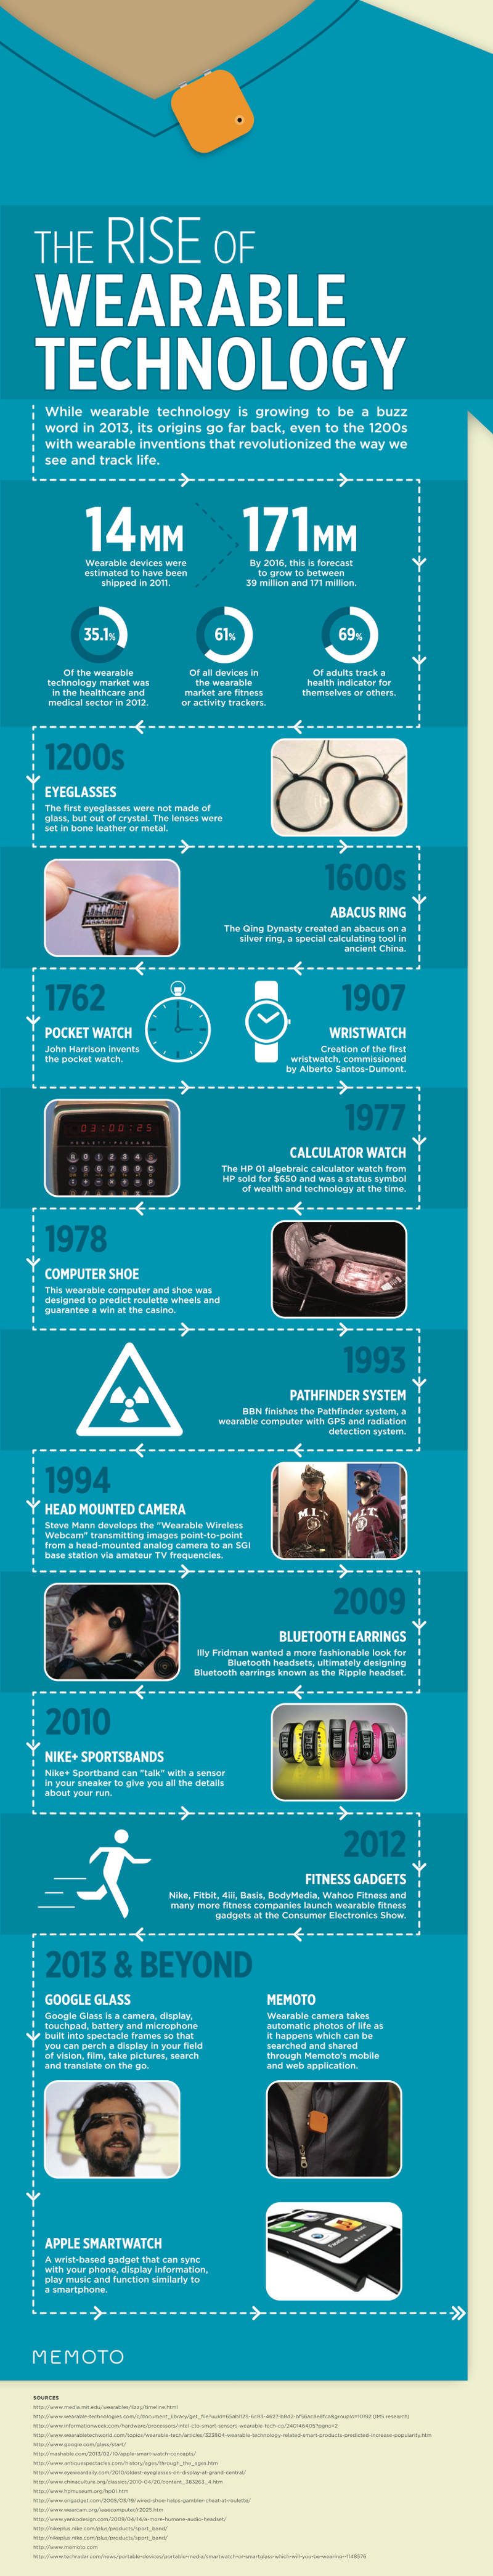 Wearable Technology Statistics Latest Wearable Technology Statistics and Trends